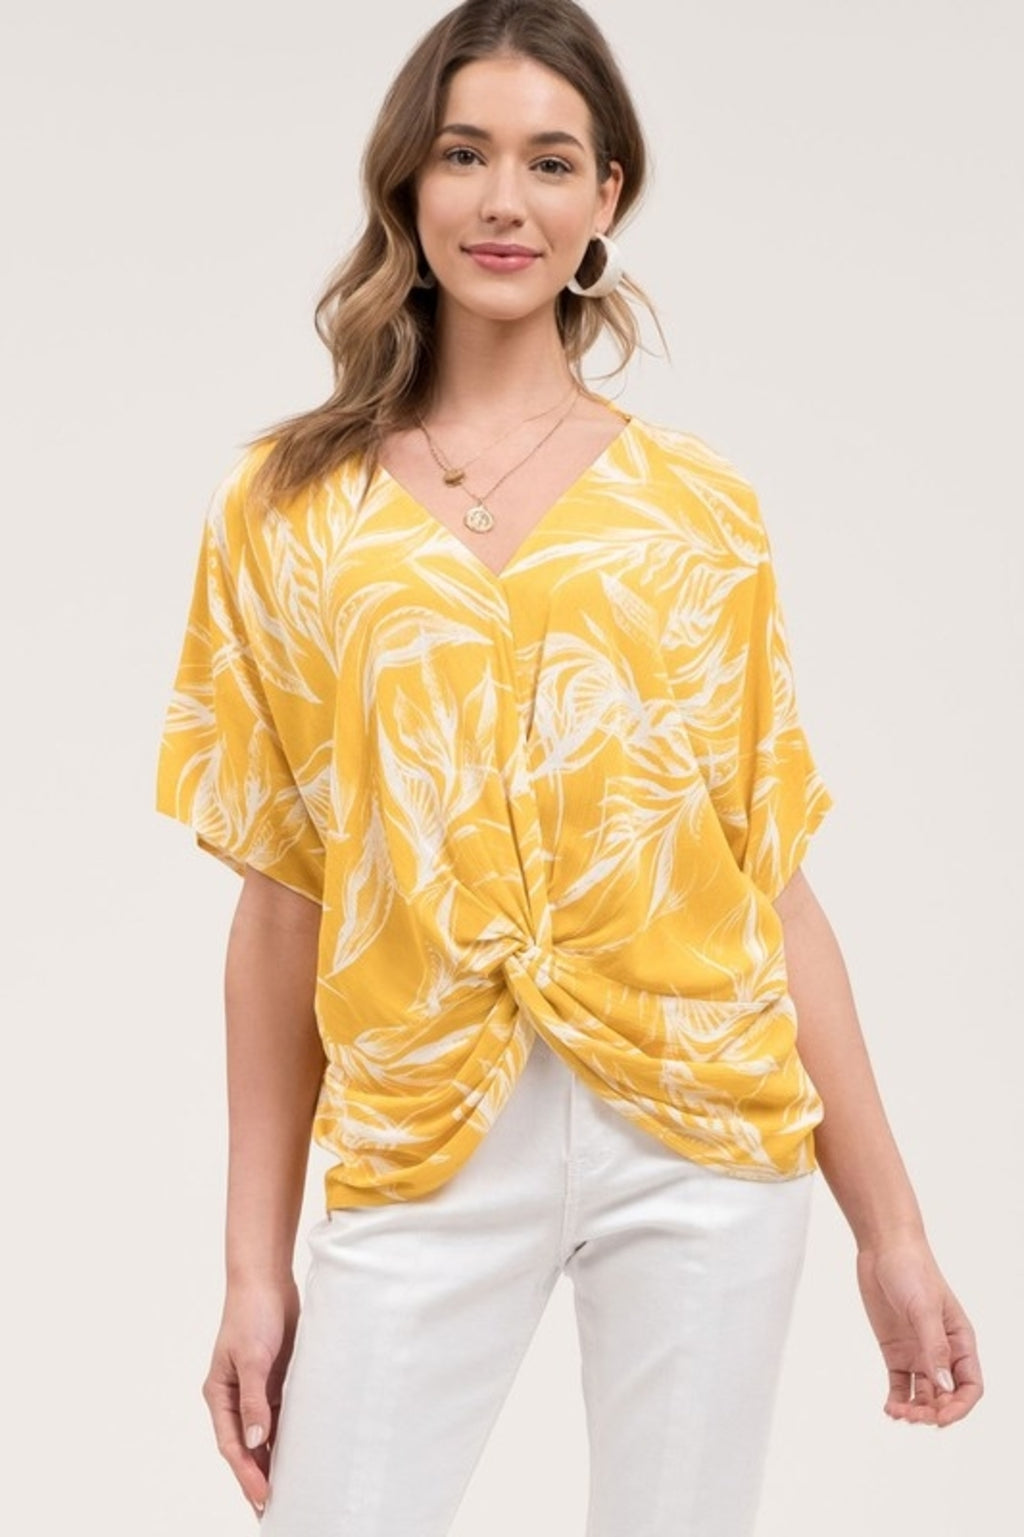 Sunny Summer Days Top